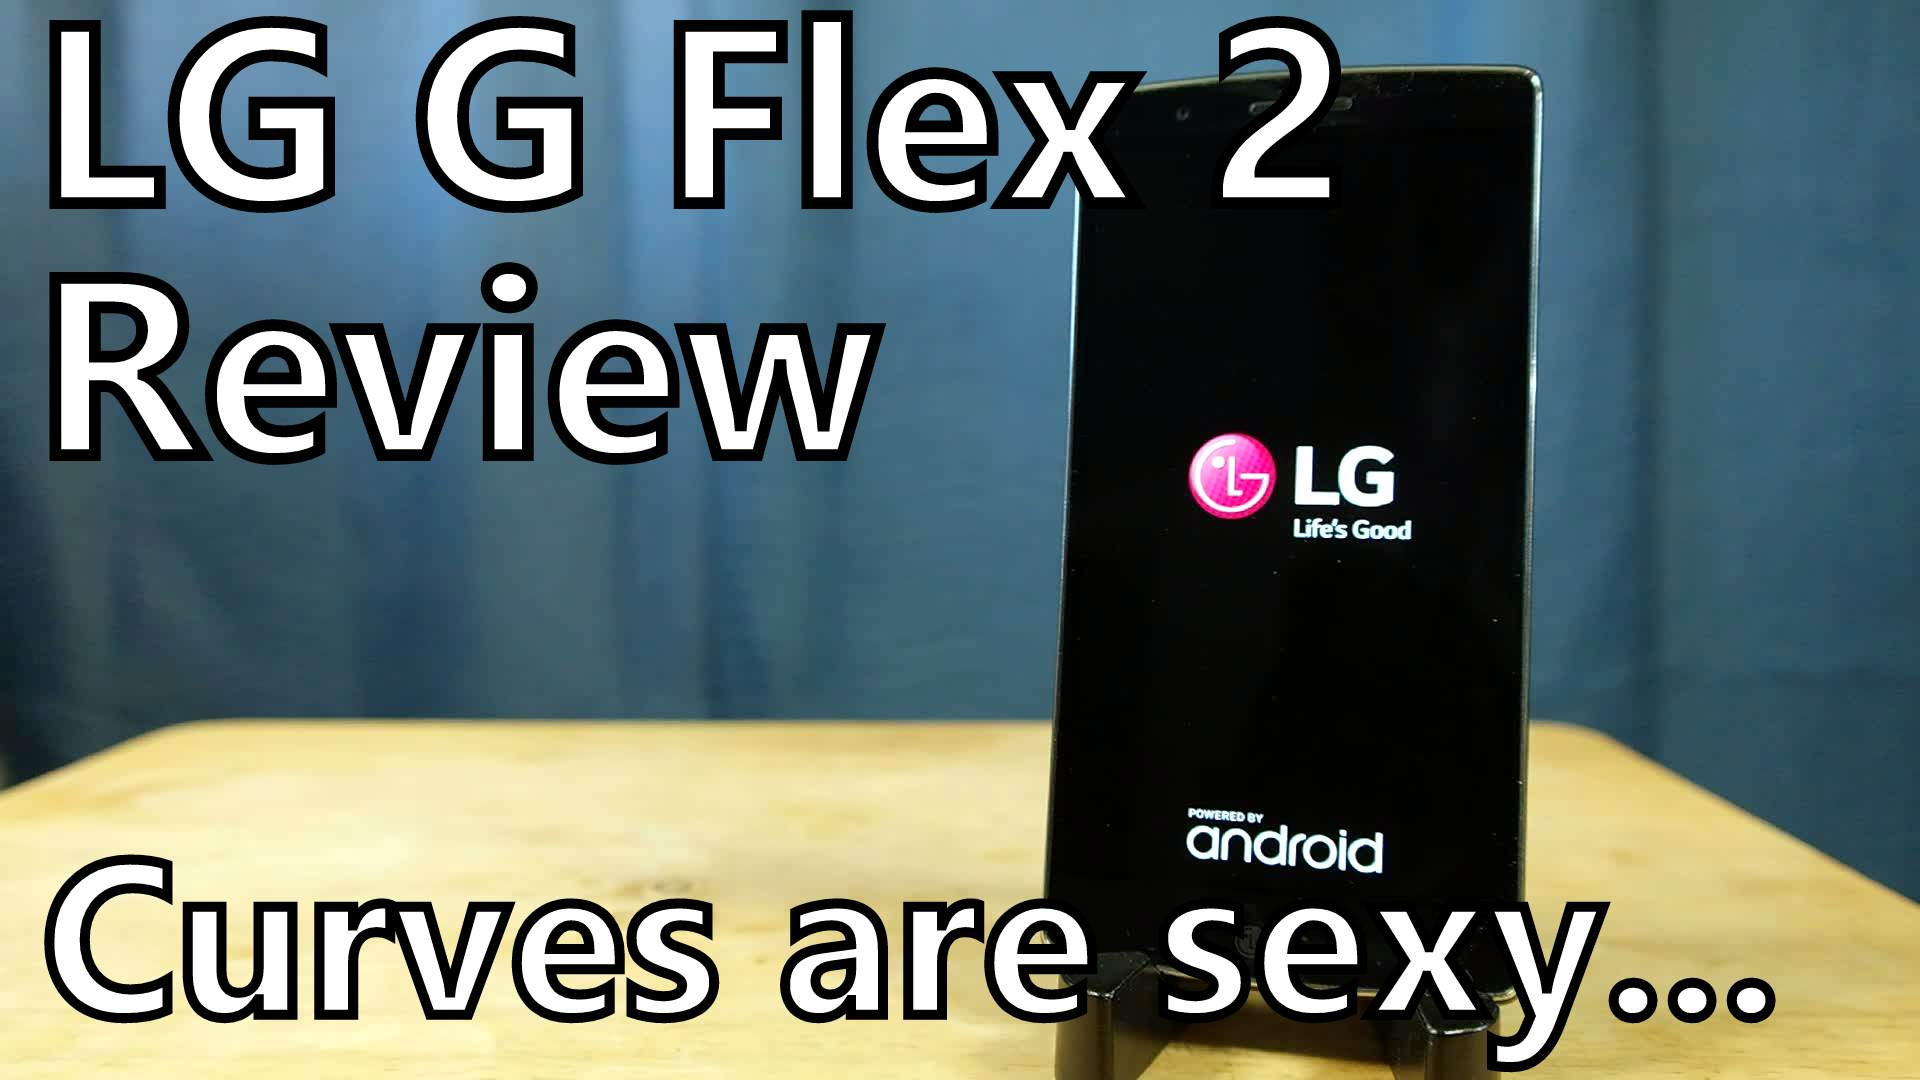 b41f93bc95 Review: LG G Flex 2 on Sprint – Curves are Sexy – SomeGadgetGuy